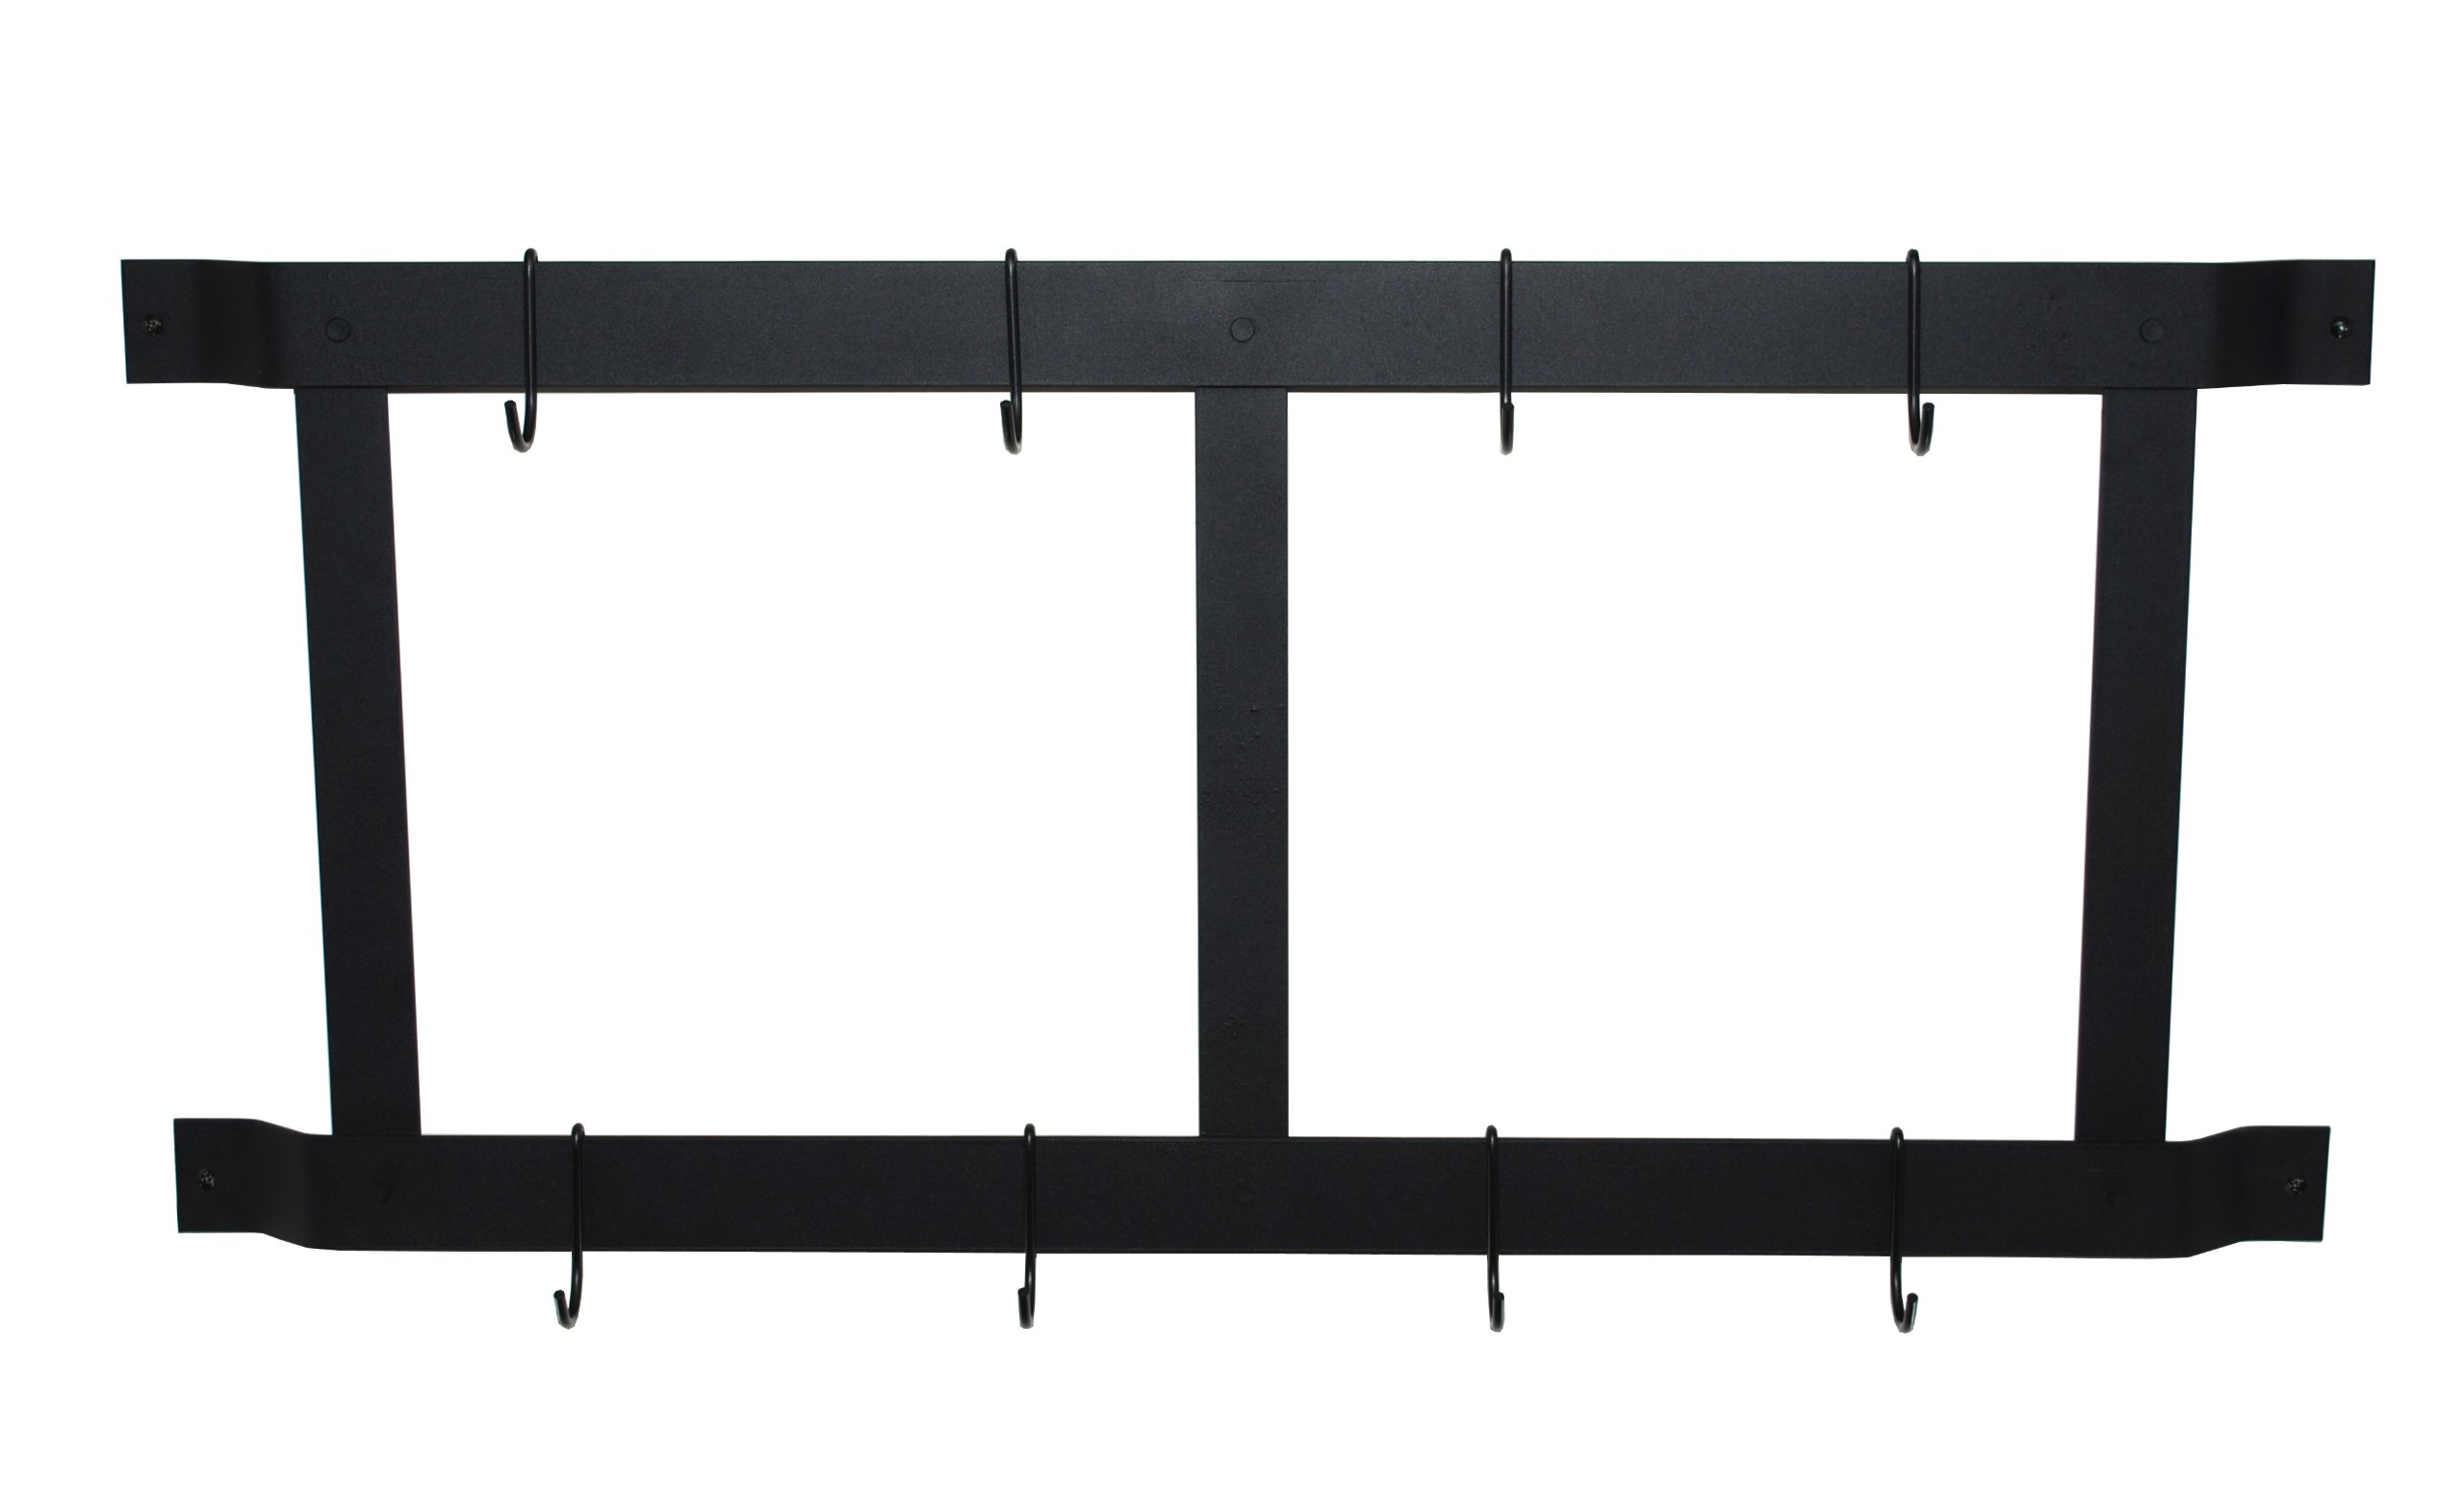 Rogar Ultimate Wall Mounted Pot Rack Vertical/Horizontal in Black by Rogar